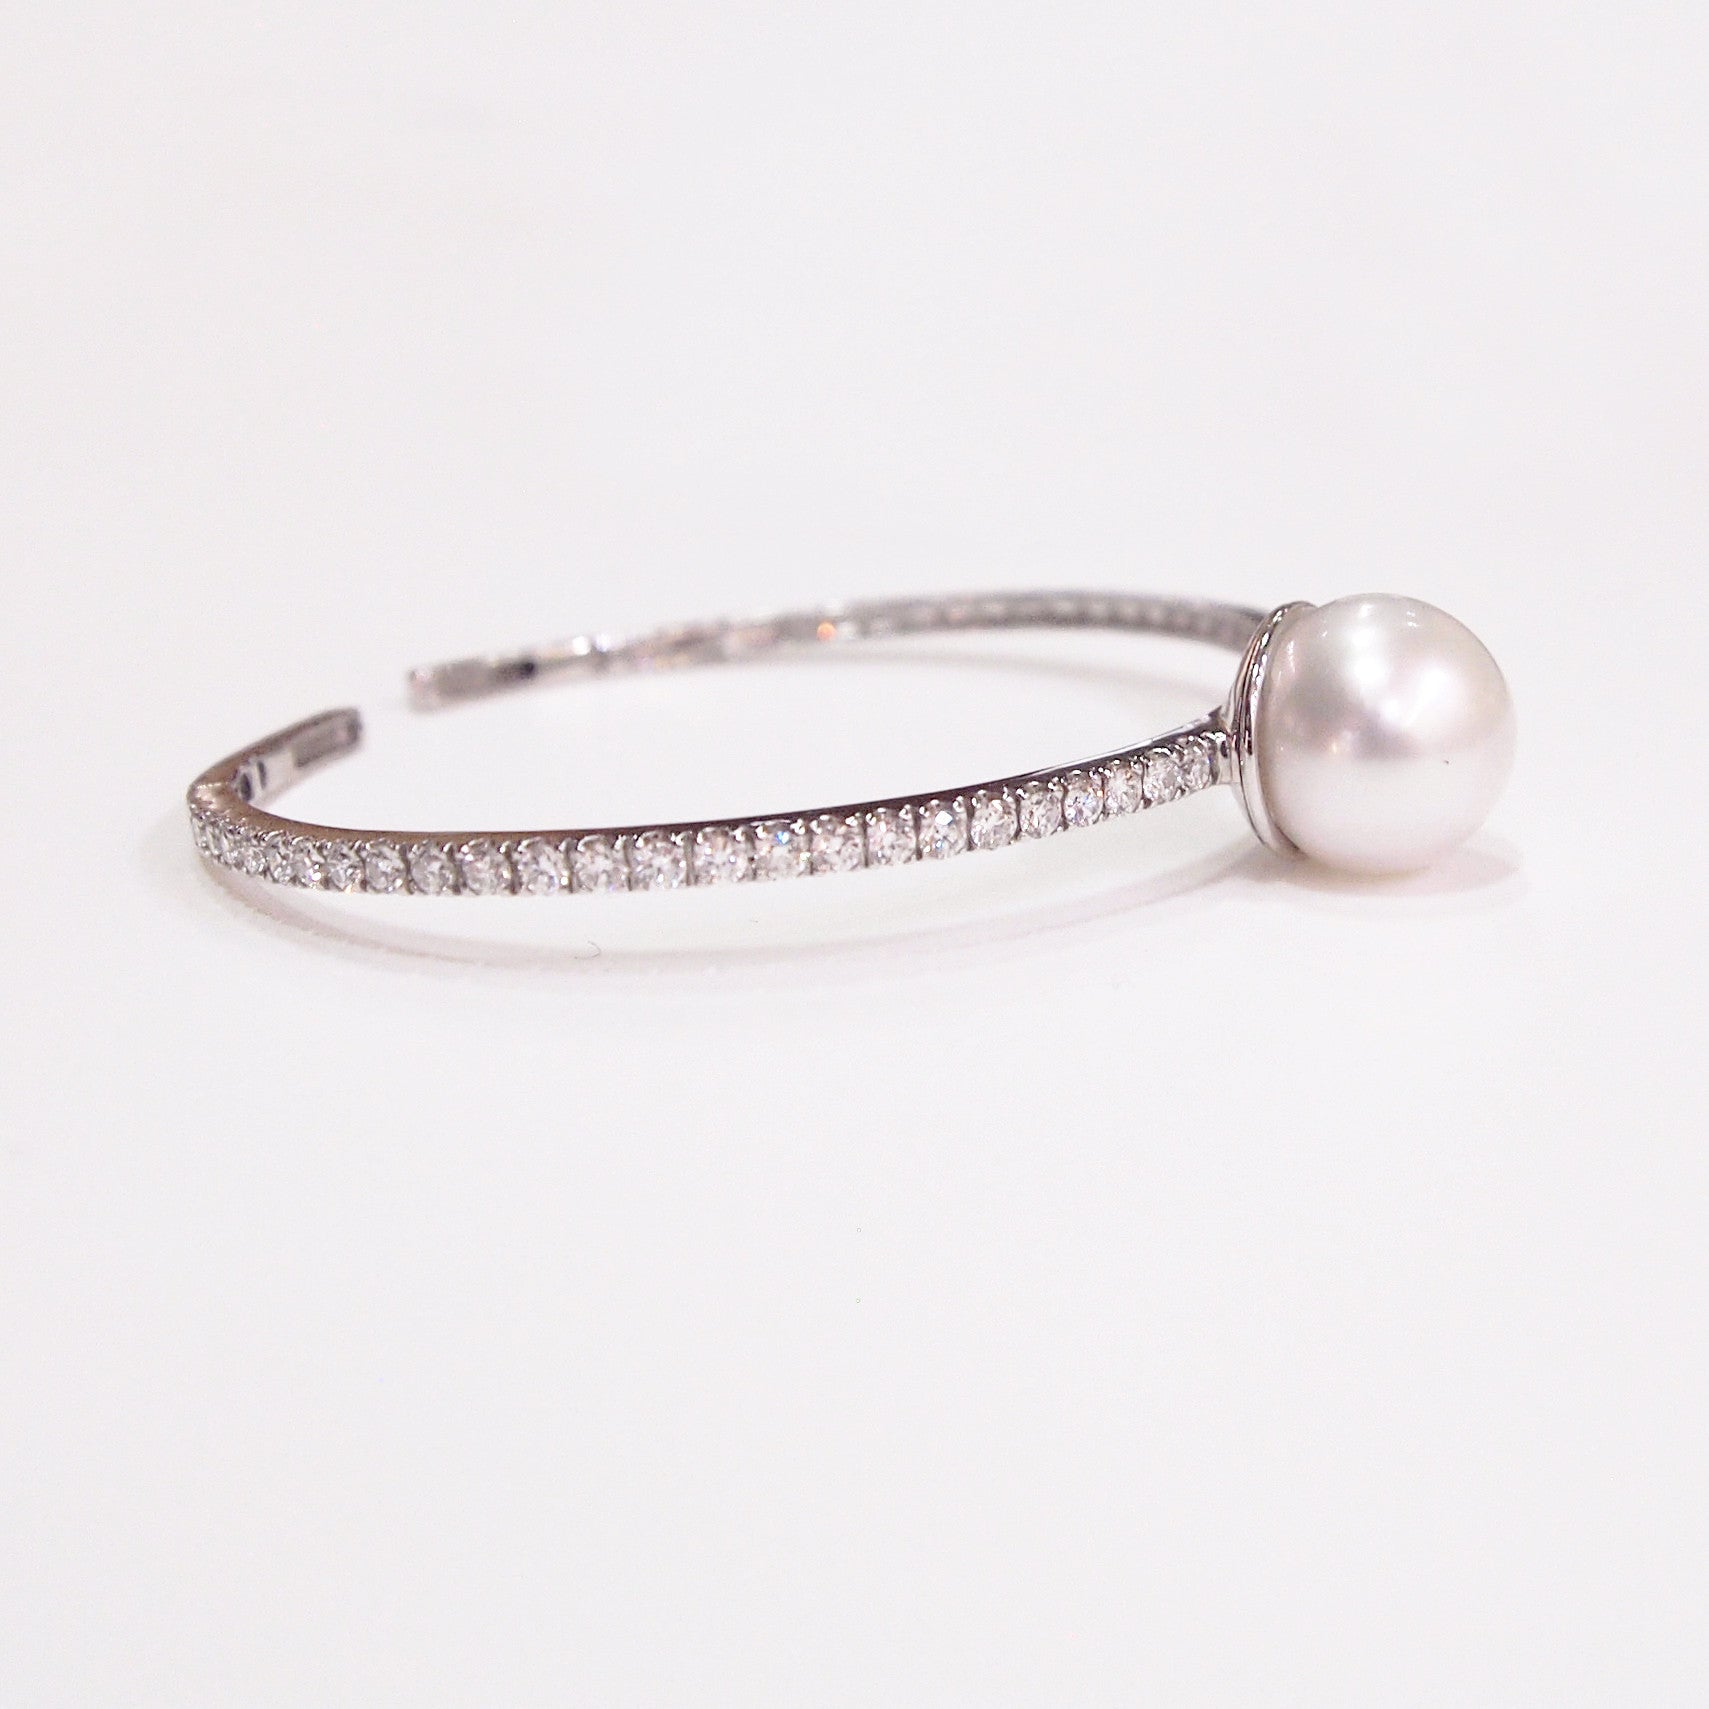 18K white gold bangle bracelet with one 13.00 mm South Sea white pearl and 48 round diamonds